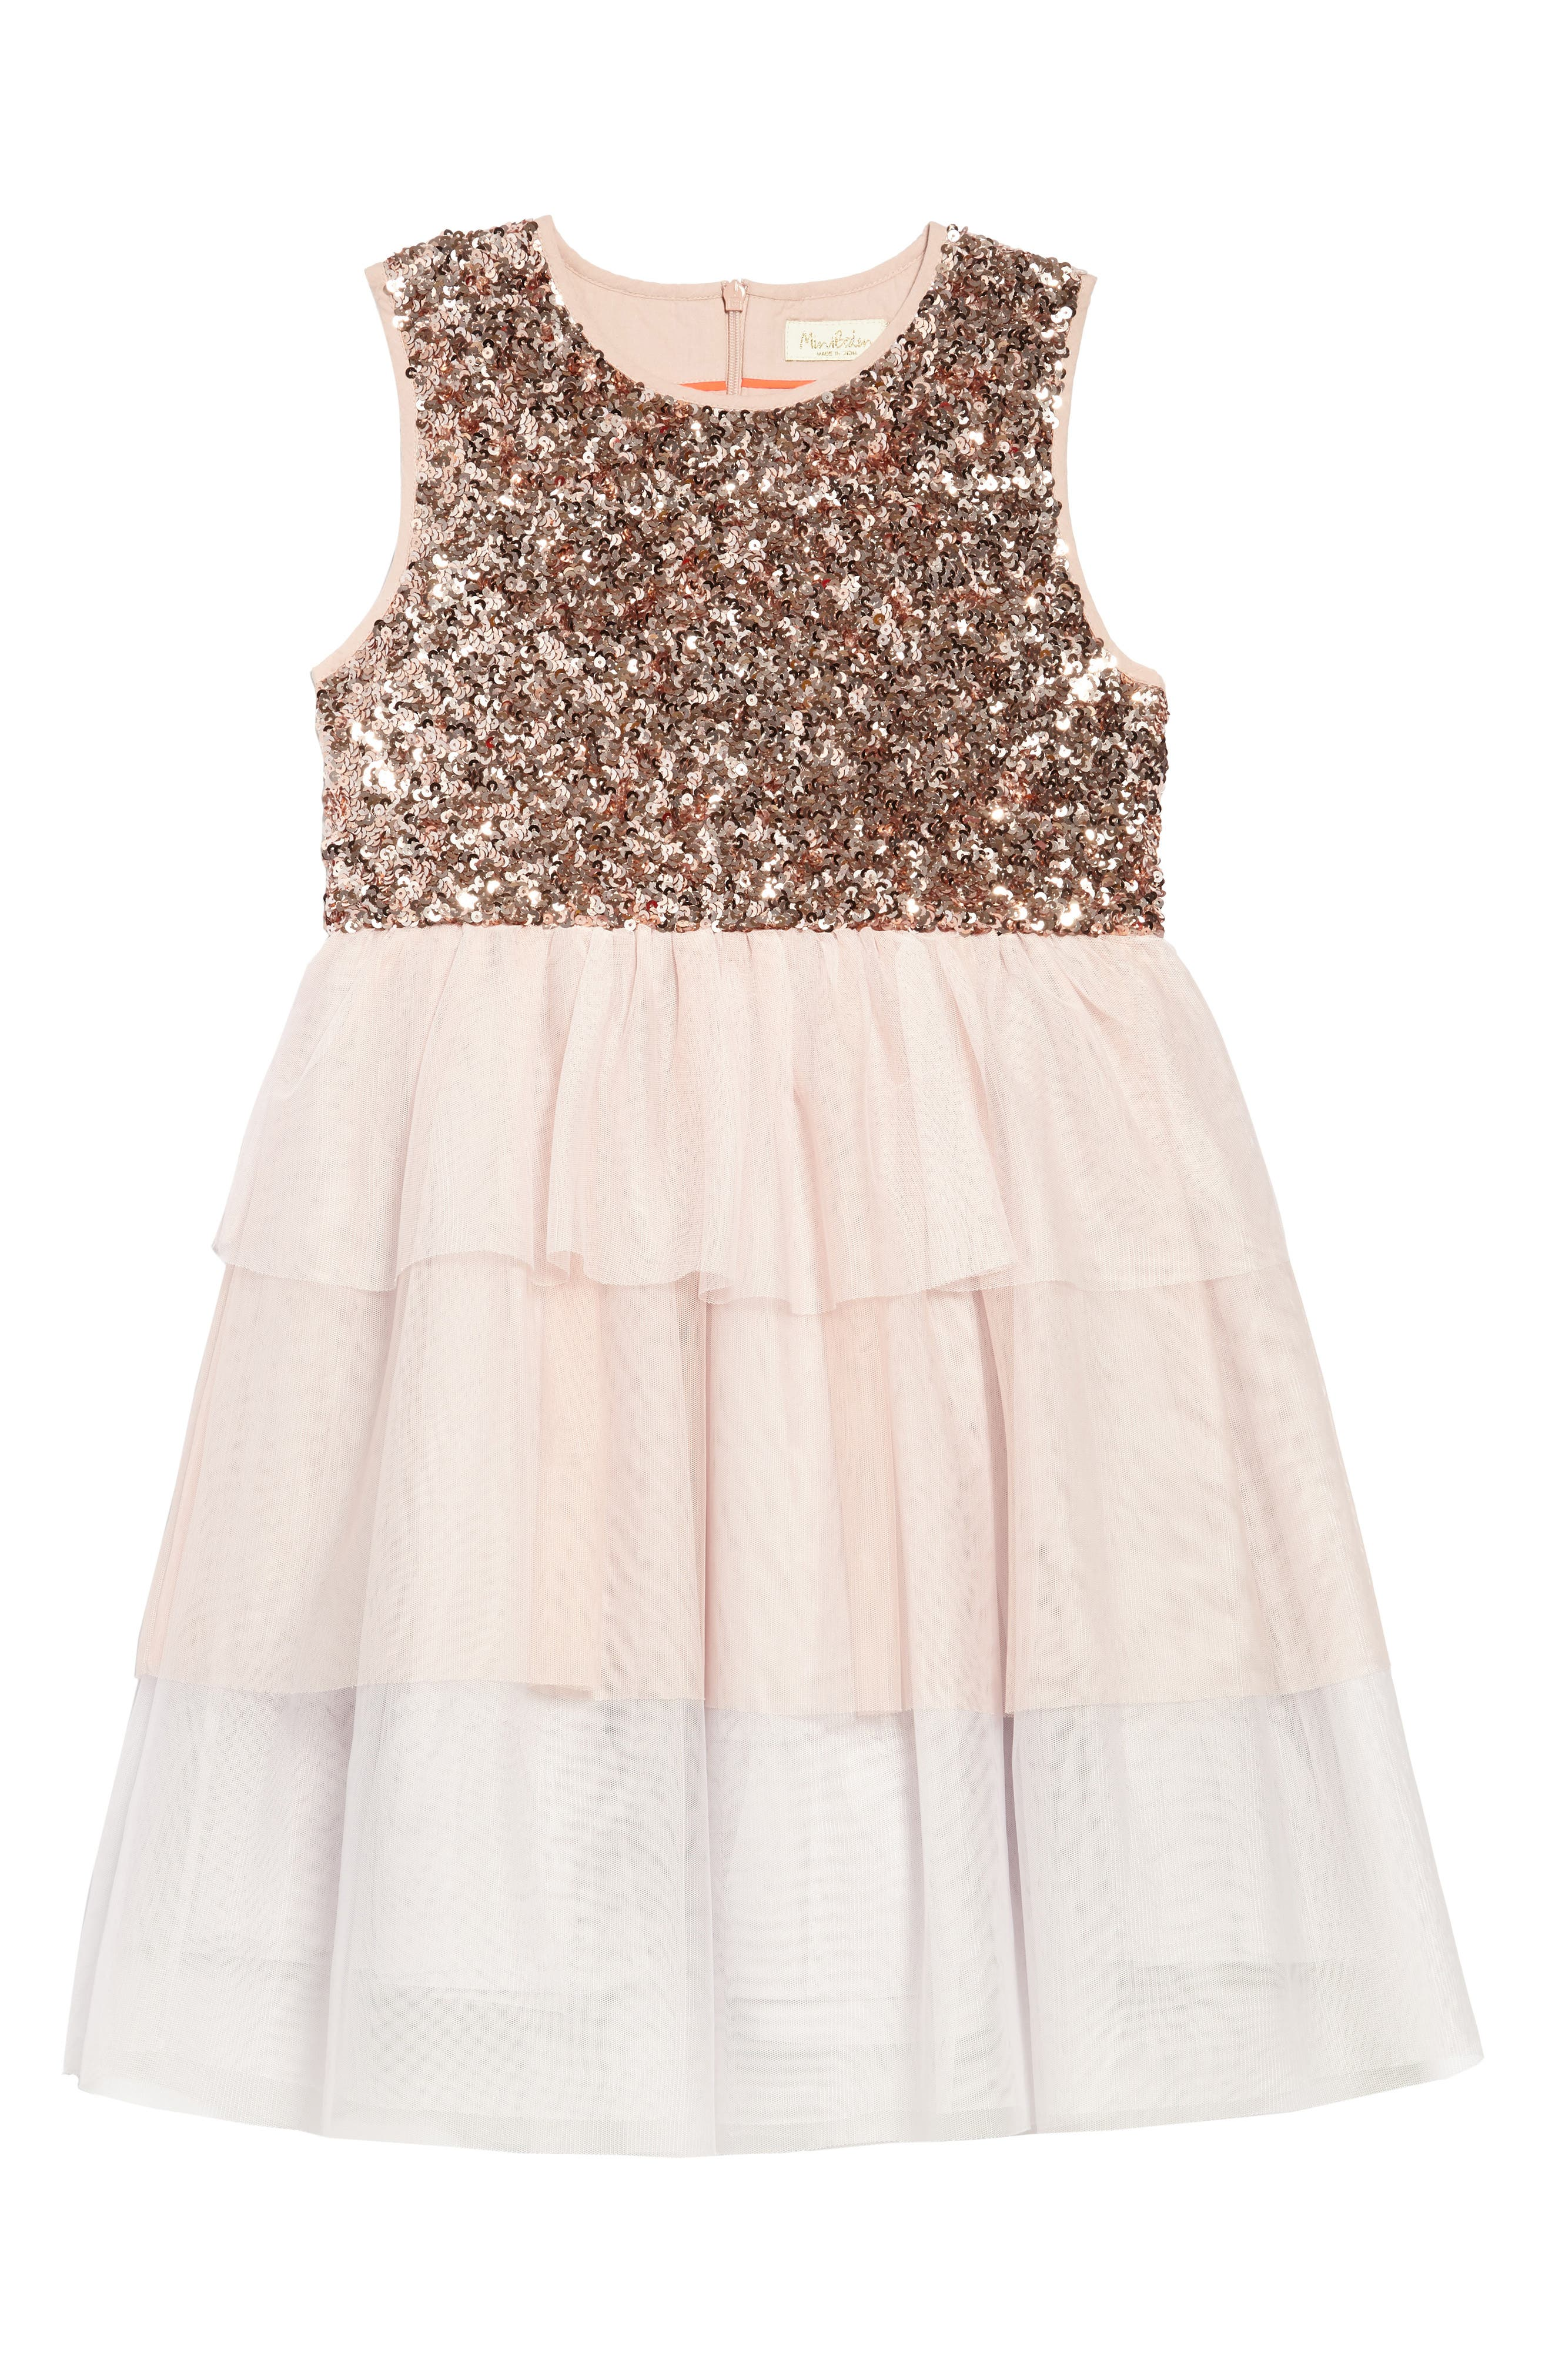 Sequin Tiered Tutu Dress,                         Main,                         color, Pnkprovence Dusty Pink